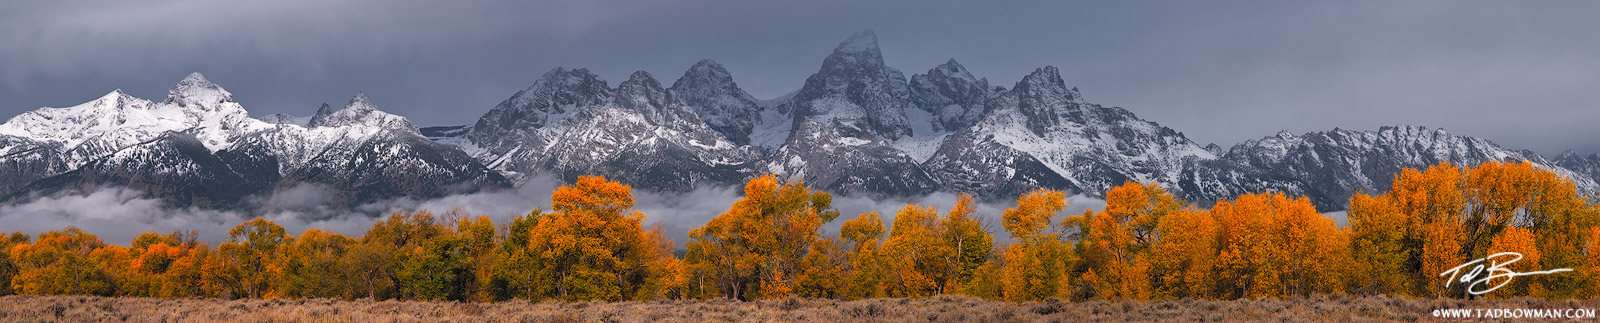 Wyoming, Grand Tetons, Grand Teton National Park, Grand Tetons photos, Grand teton national park photos, panorama, panoramas, sunrise, fall, autumn, fall foliage, photo